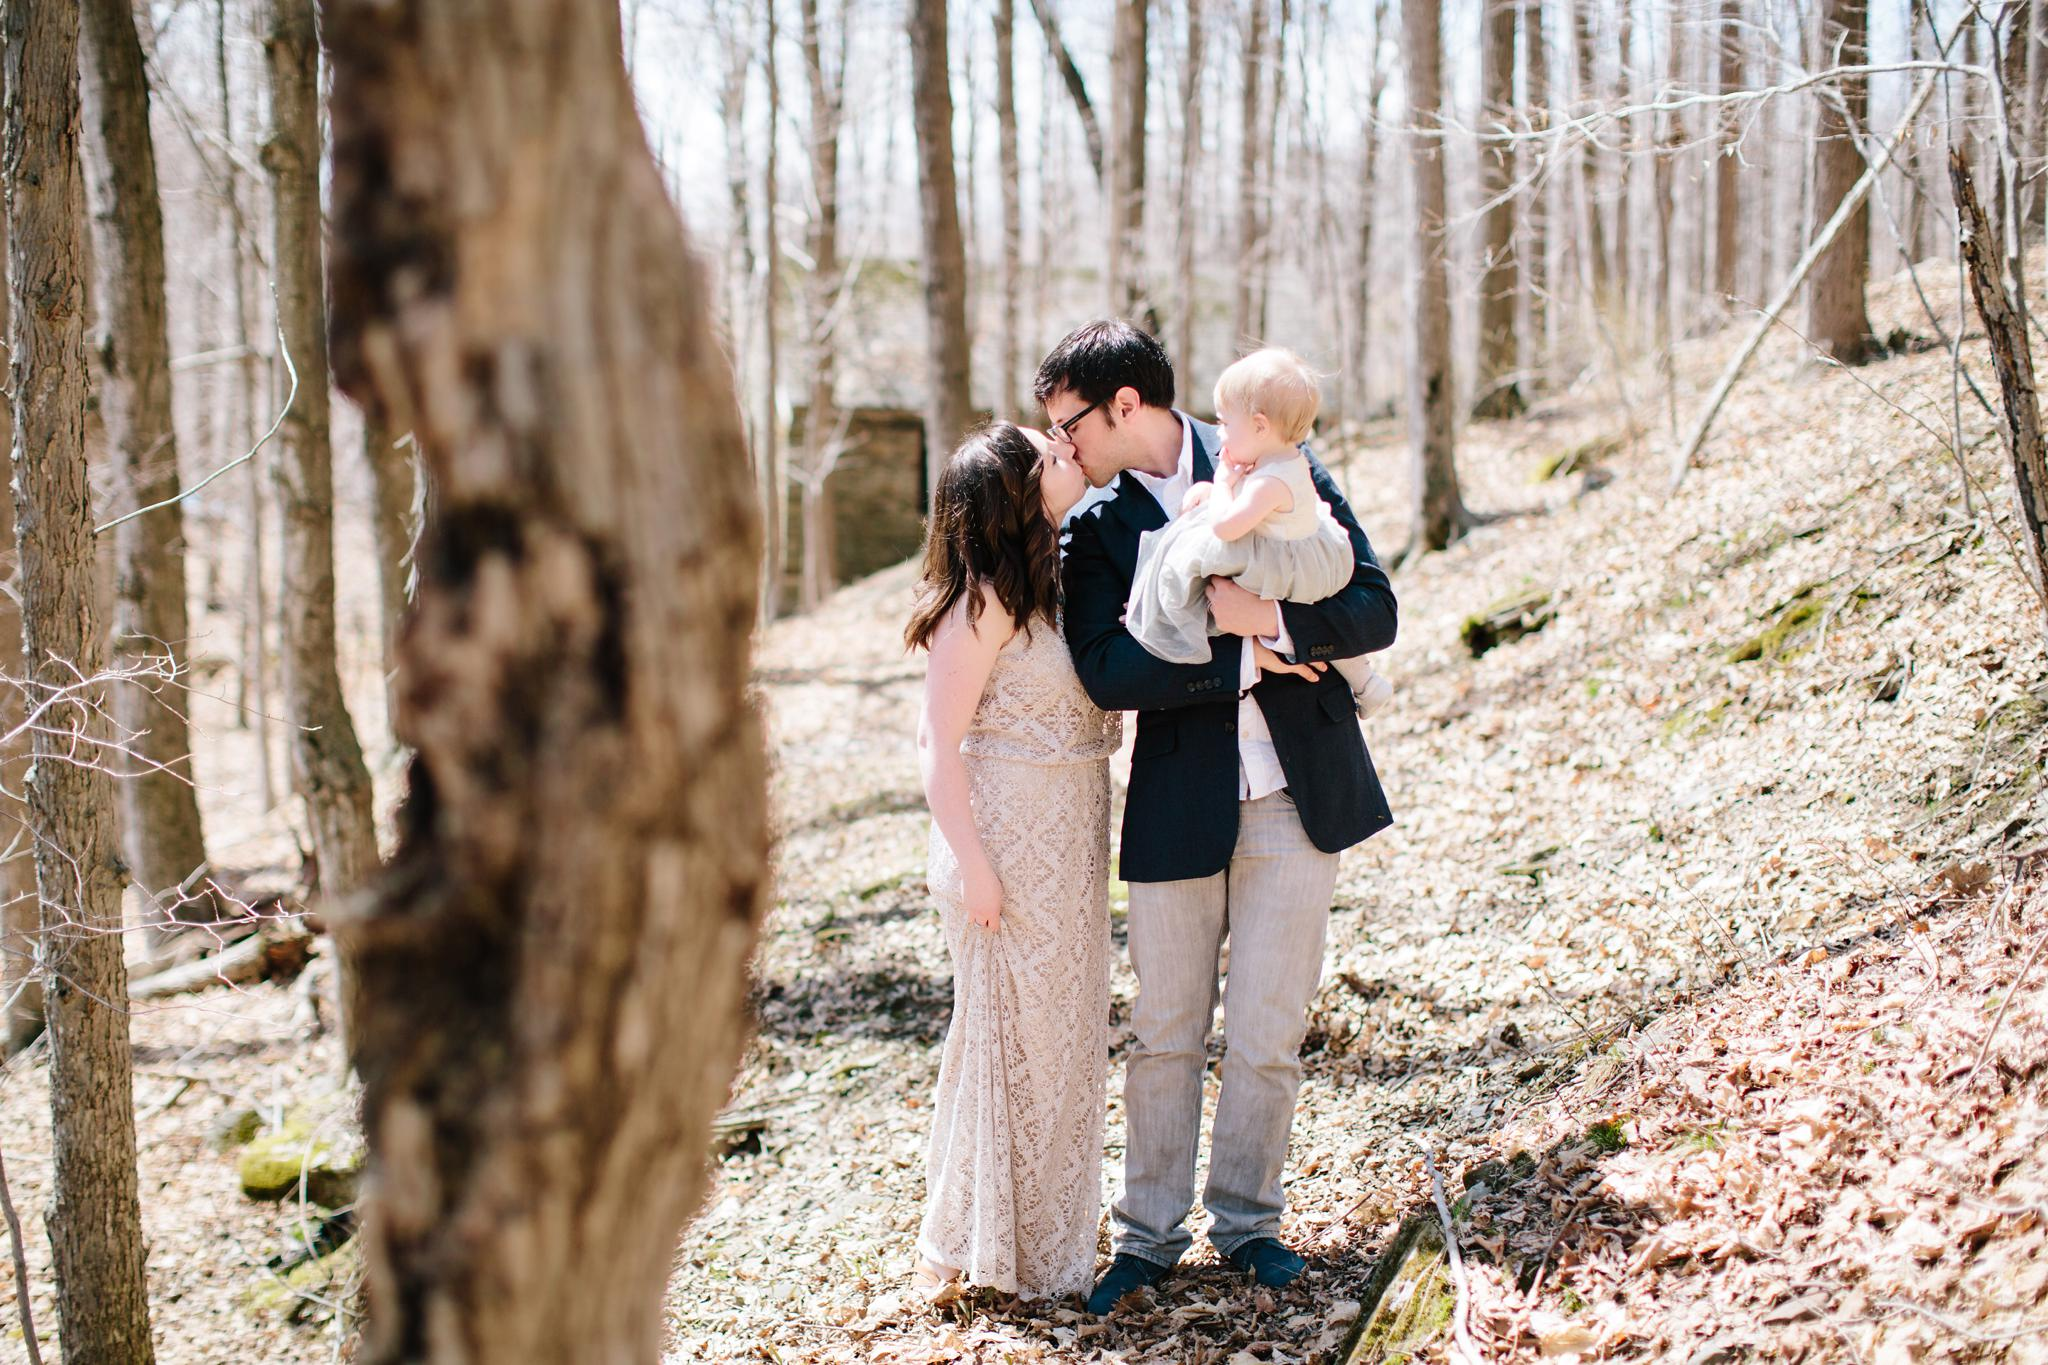 Family_Session_Tierney_Cyanne_Photography_5896.jpg